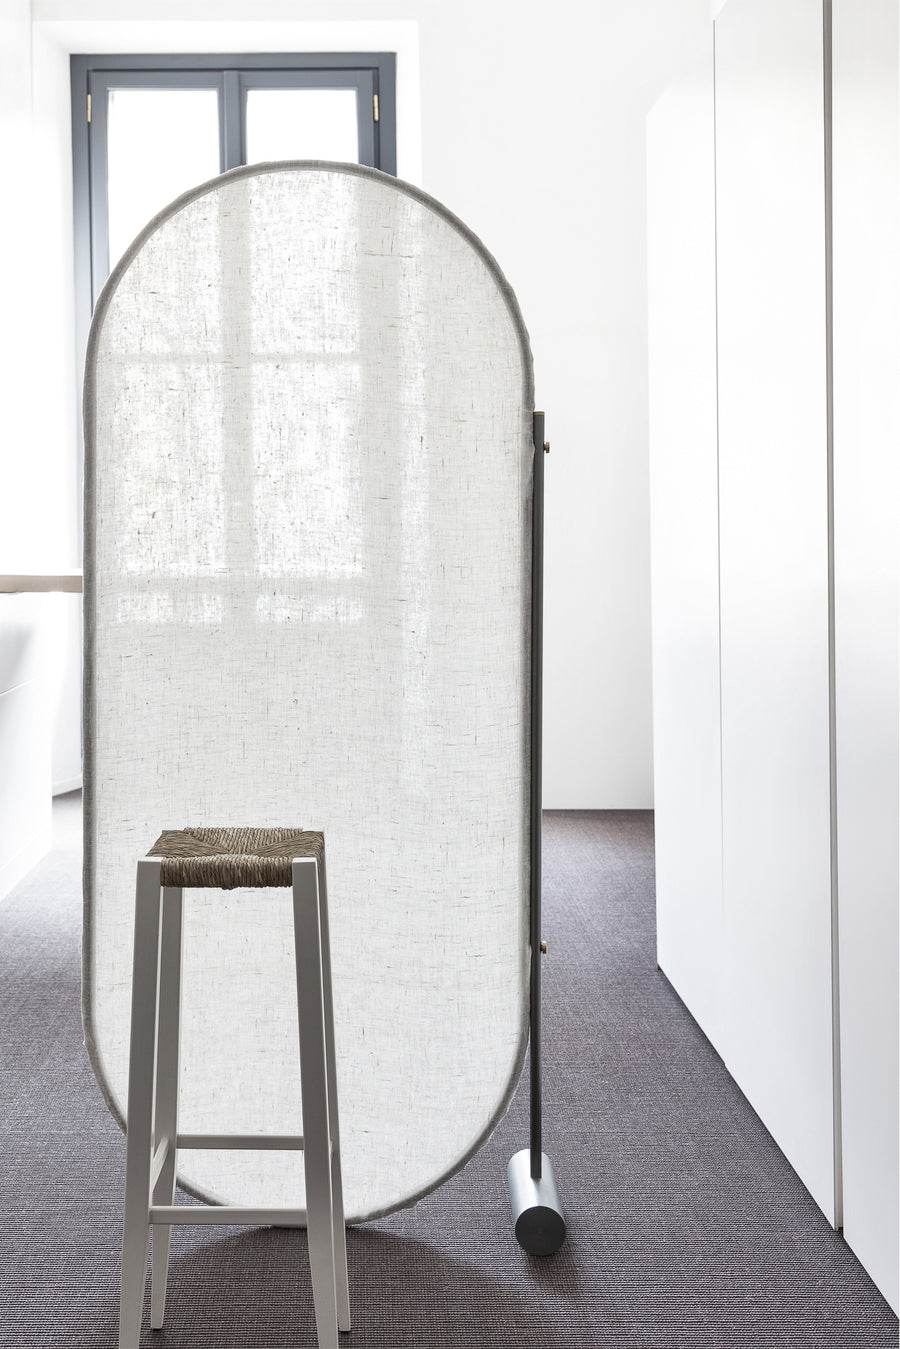 SEPARE' Room Divider by Omri Revesz and Damian Tatangelo for Mingardo